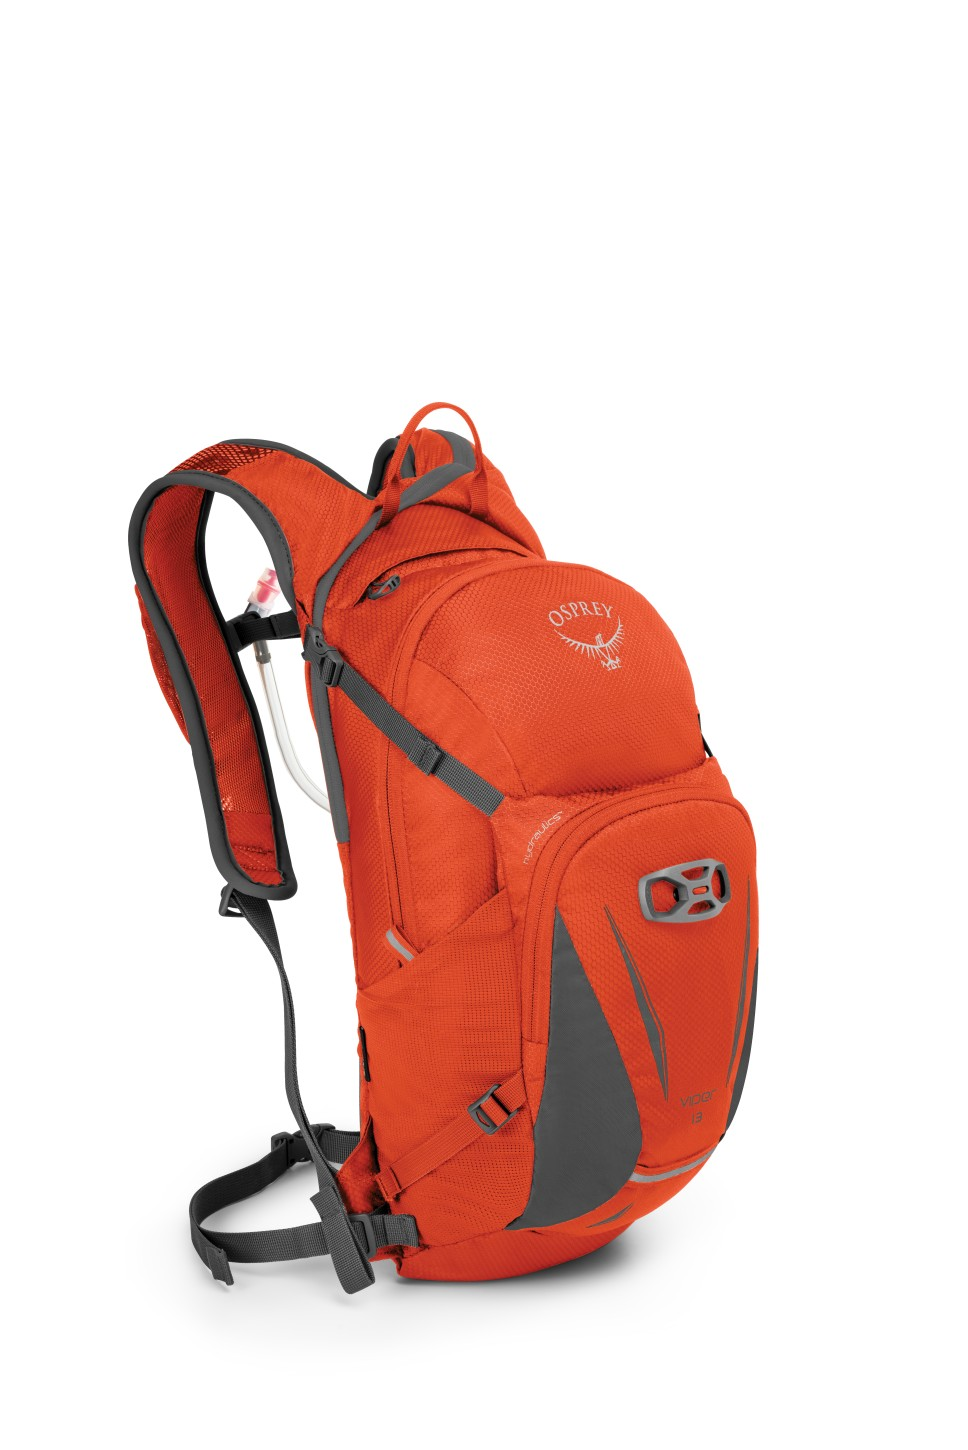 Osprey Viper 13 O/S Blaze Orange-30